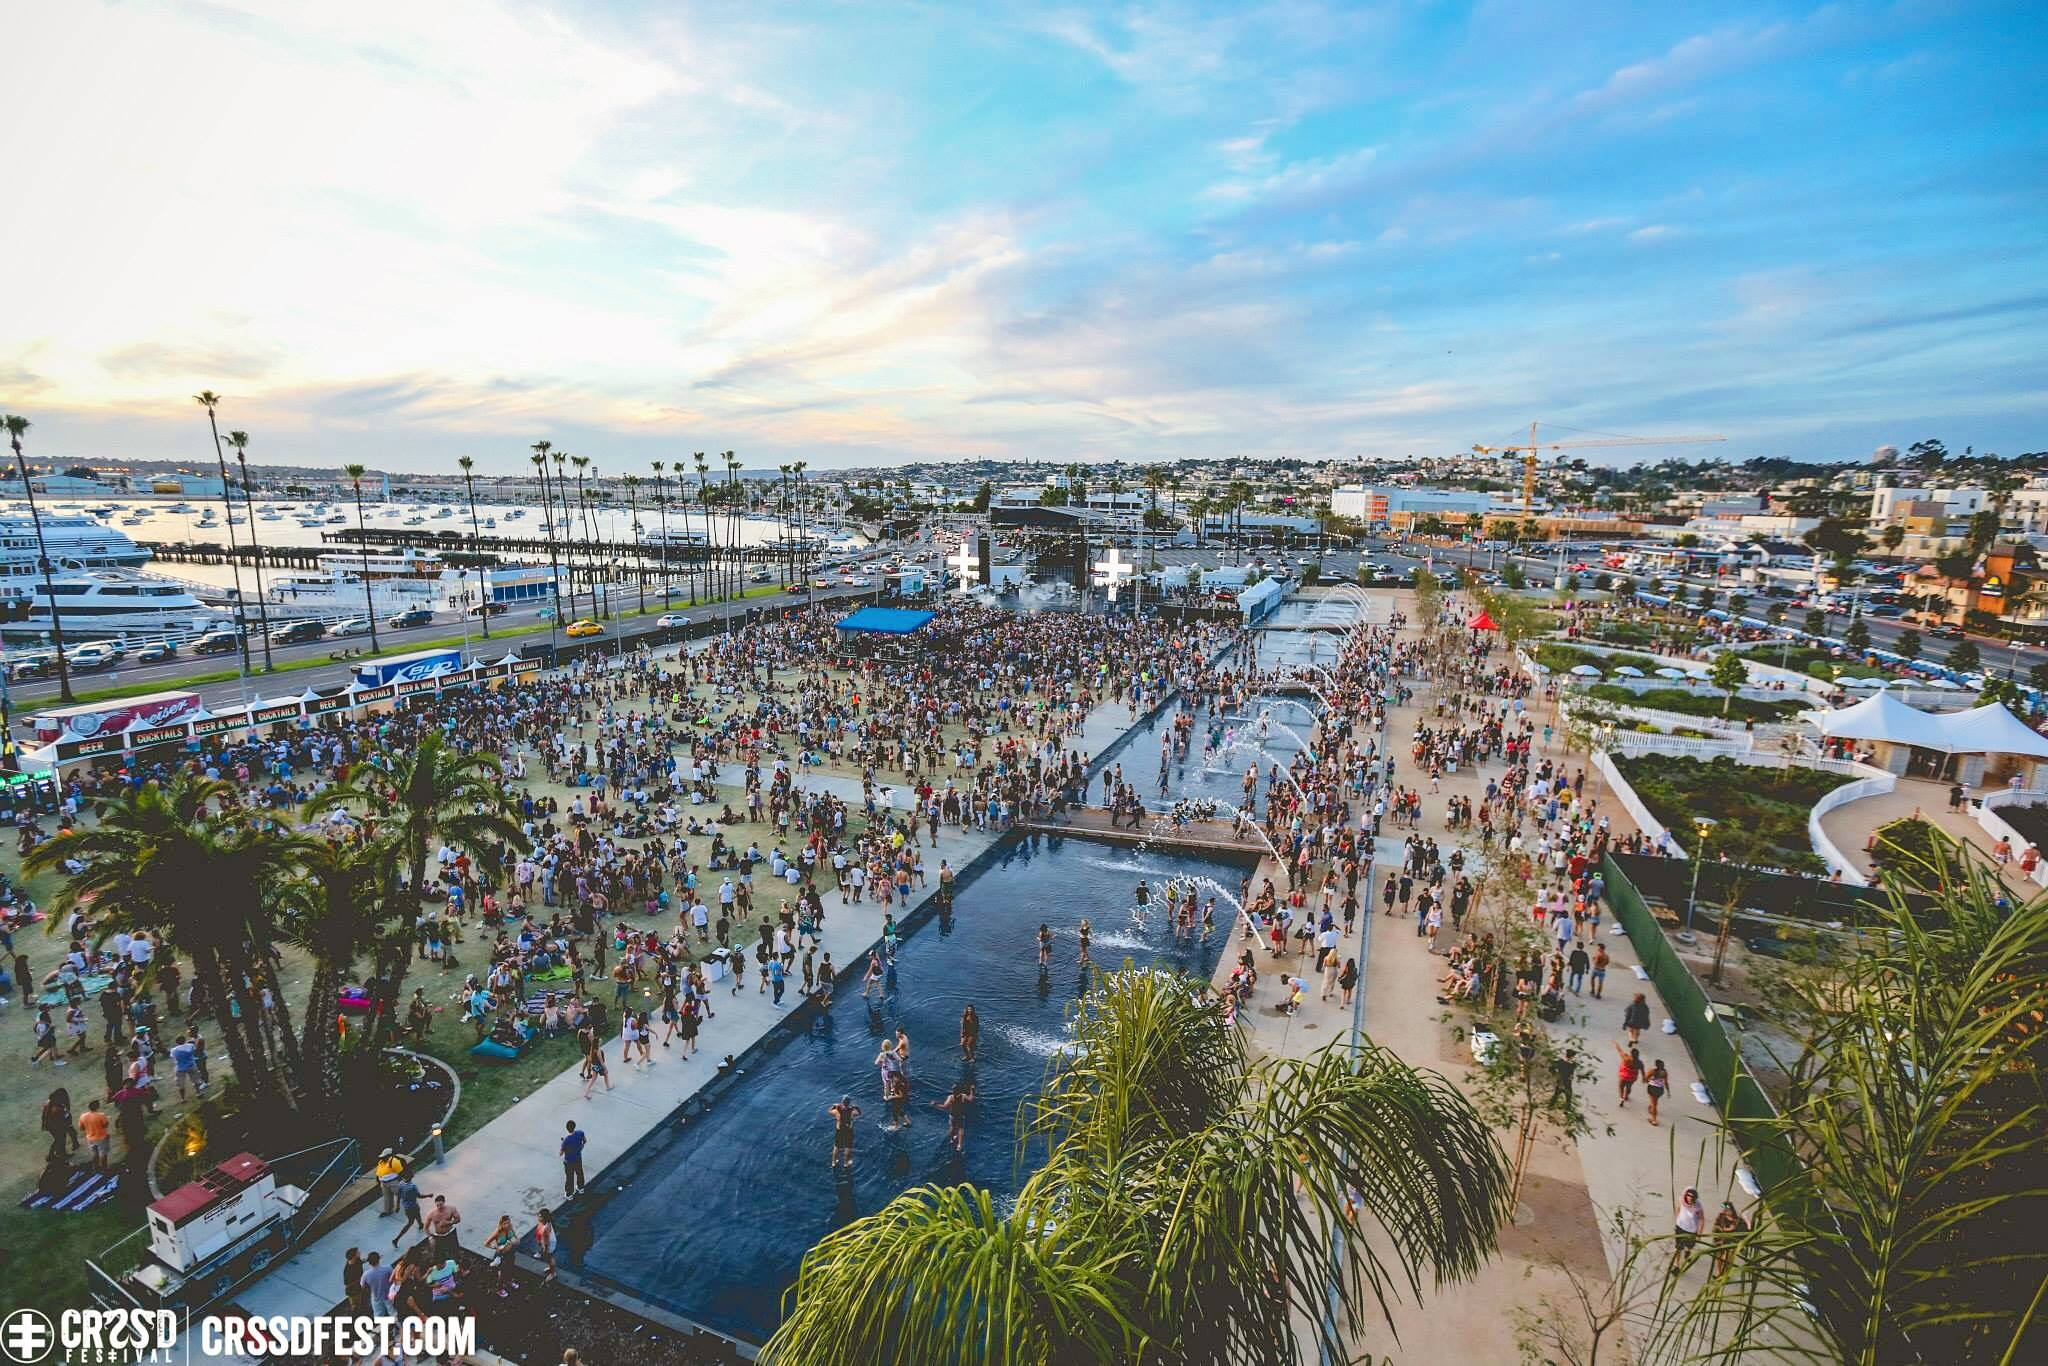 CRSSD Festival Lineup Phase 2 Includes Kaytranada, MK & More